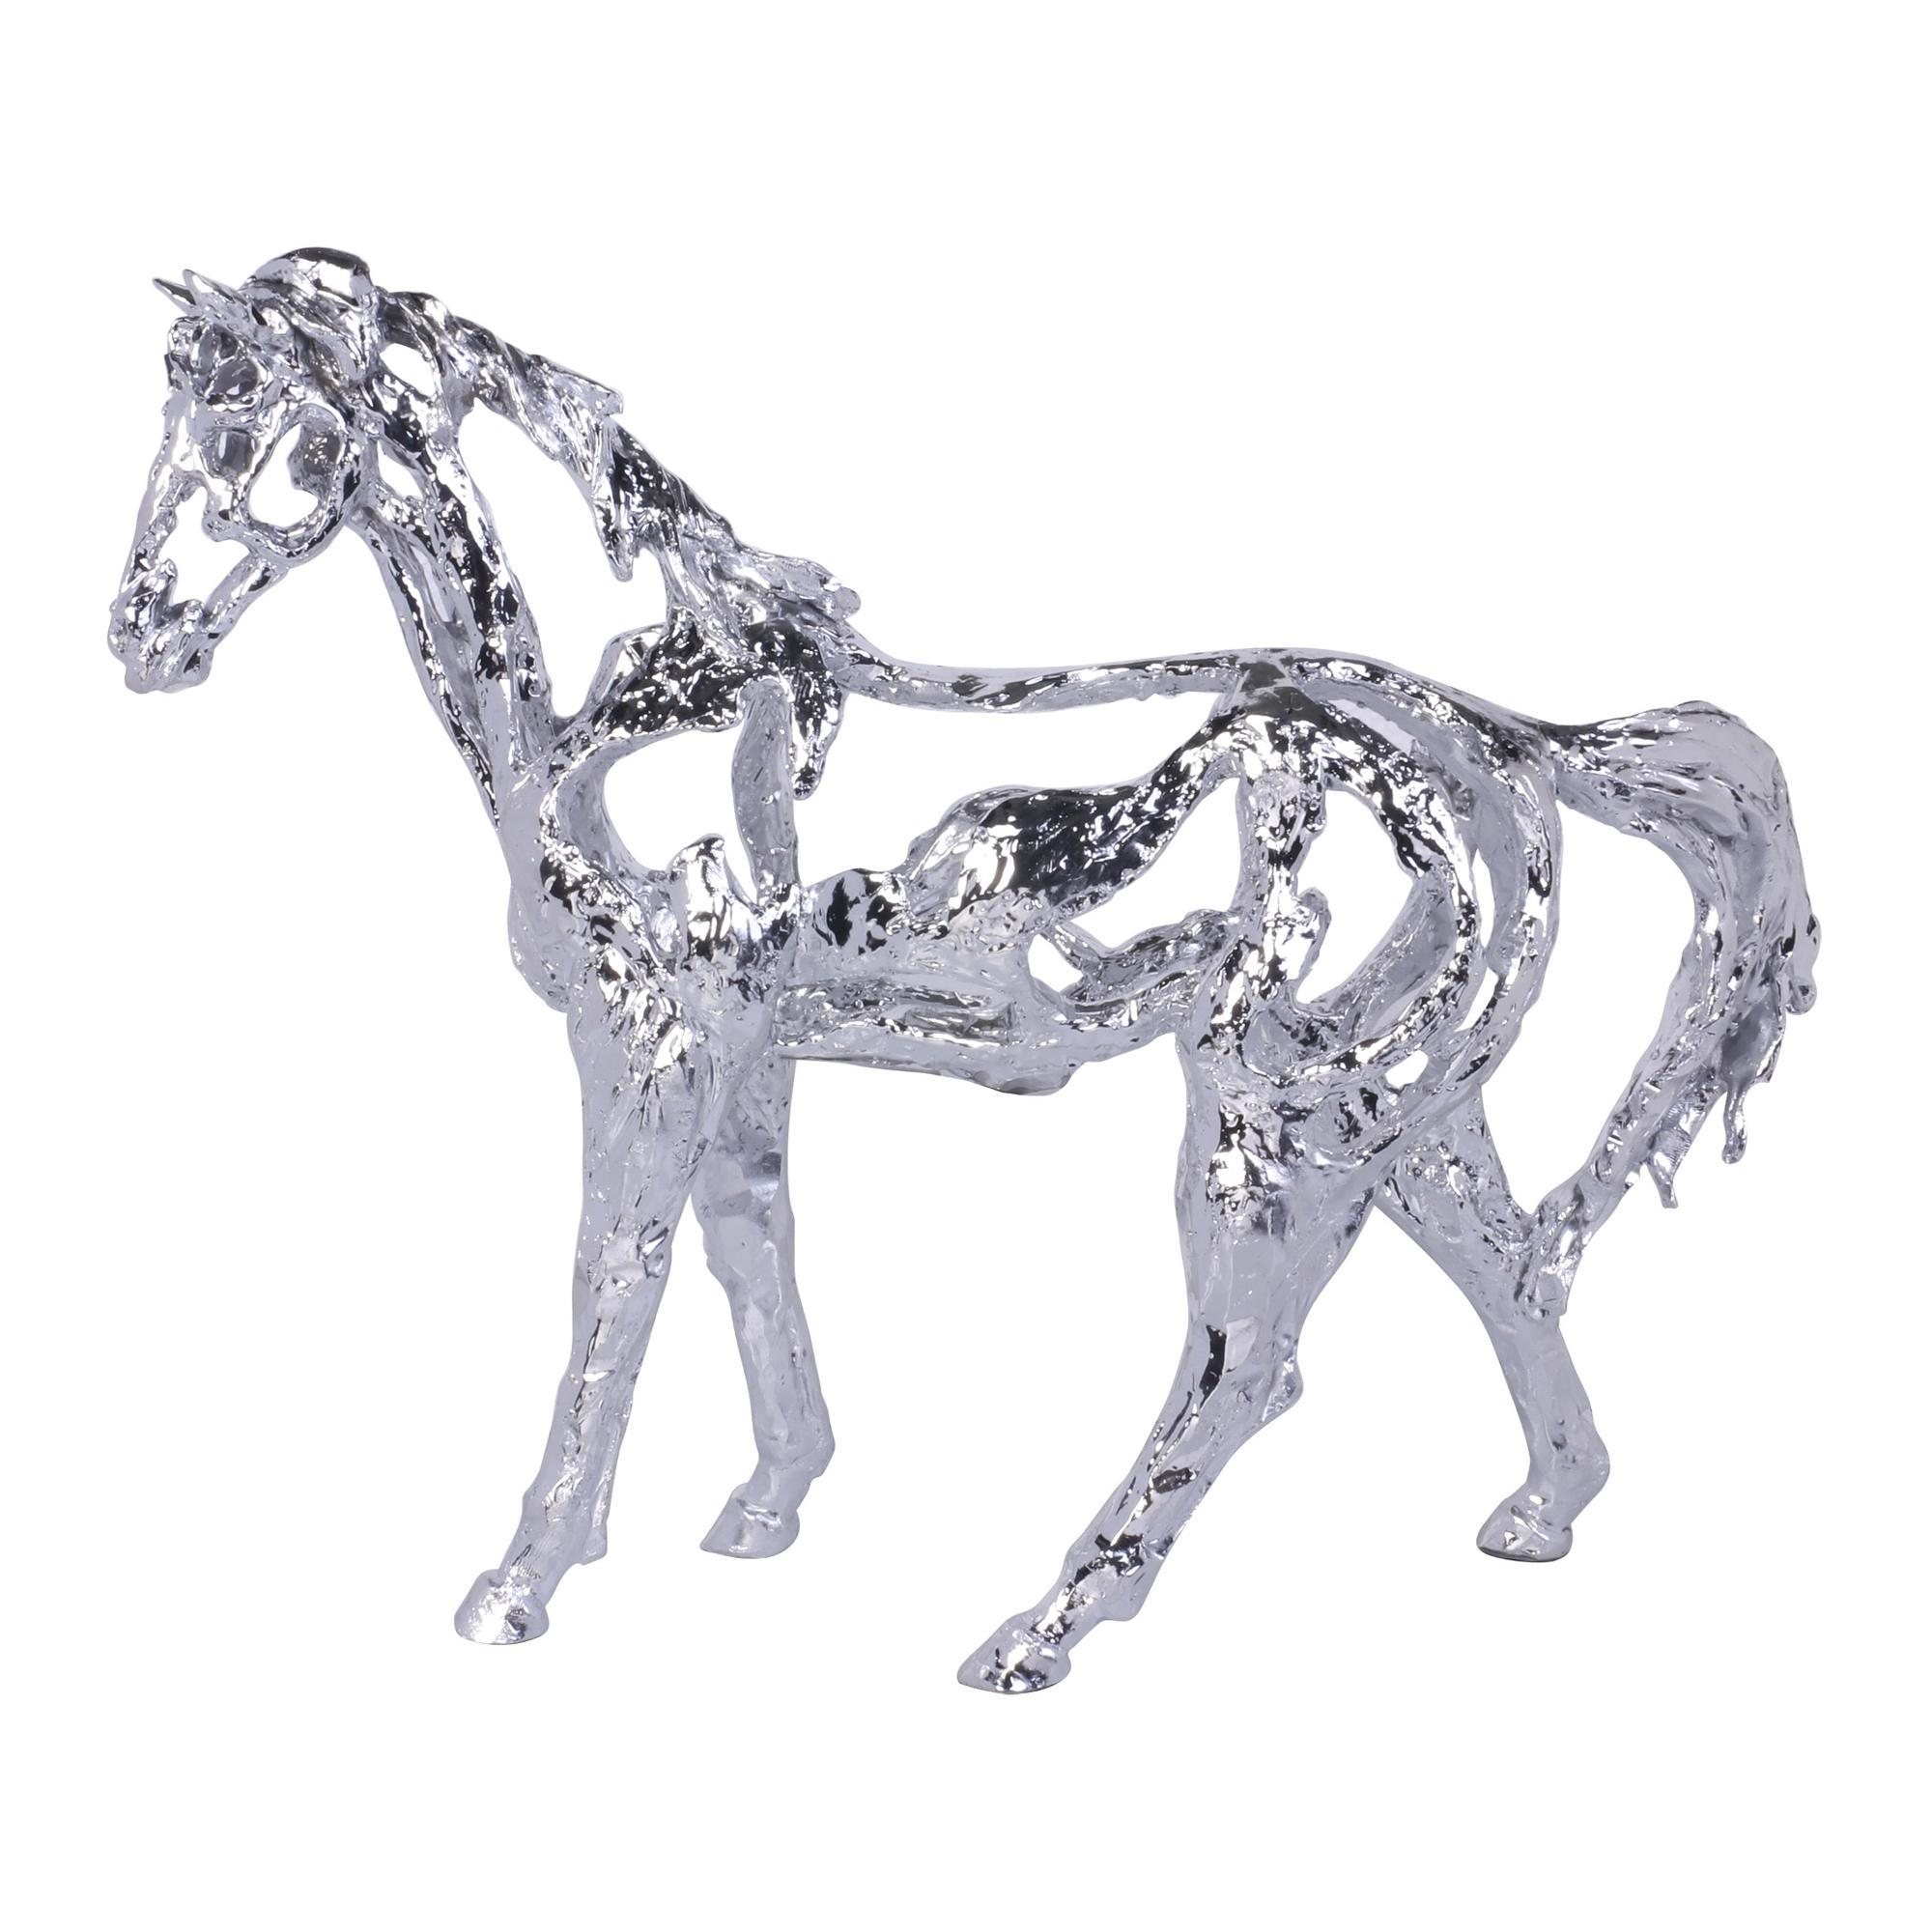 Caballo Decorativo 44 x 15 x 34 cm - Fokus Home